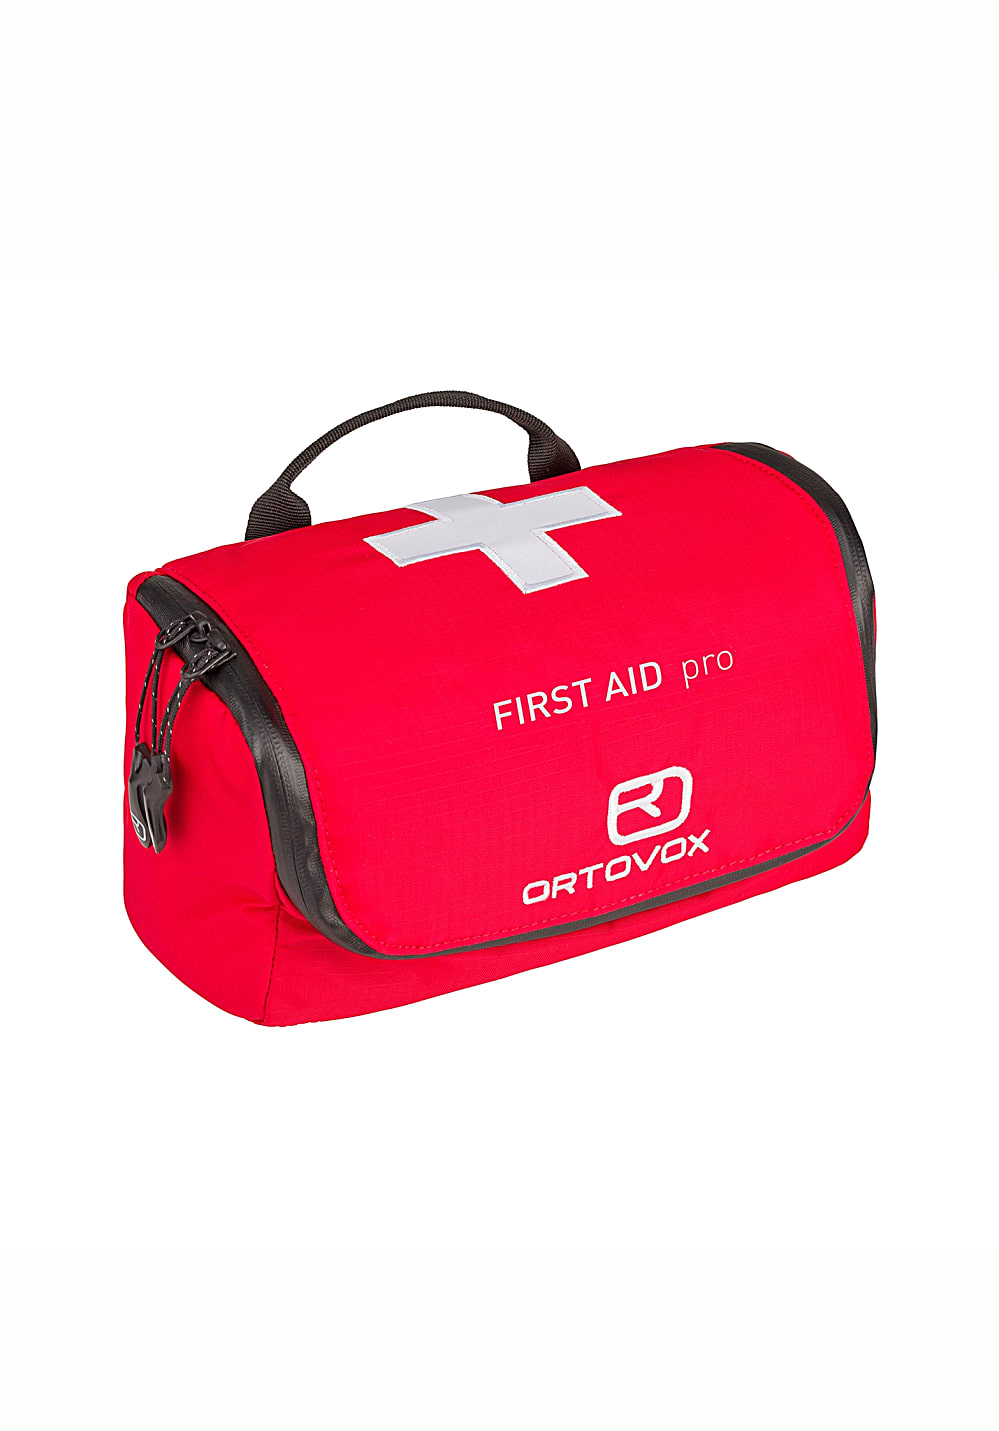 Ortovox First Aid Pro Erste Hilfe Set - Rot - OneSize